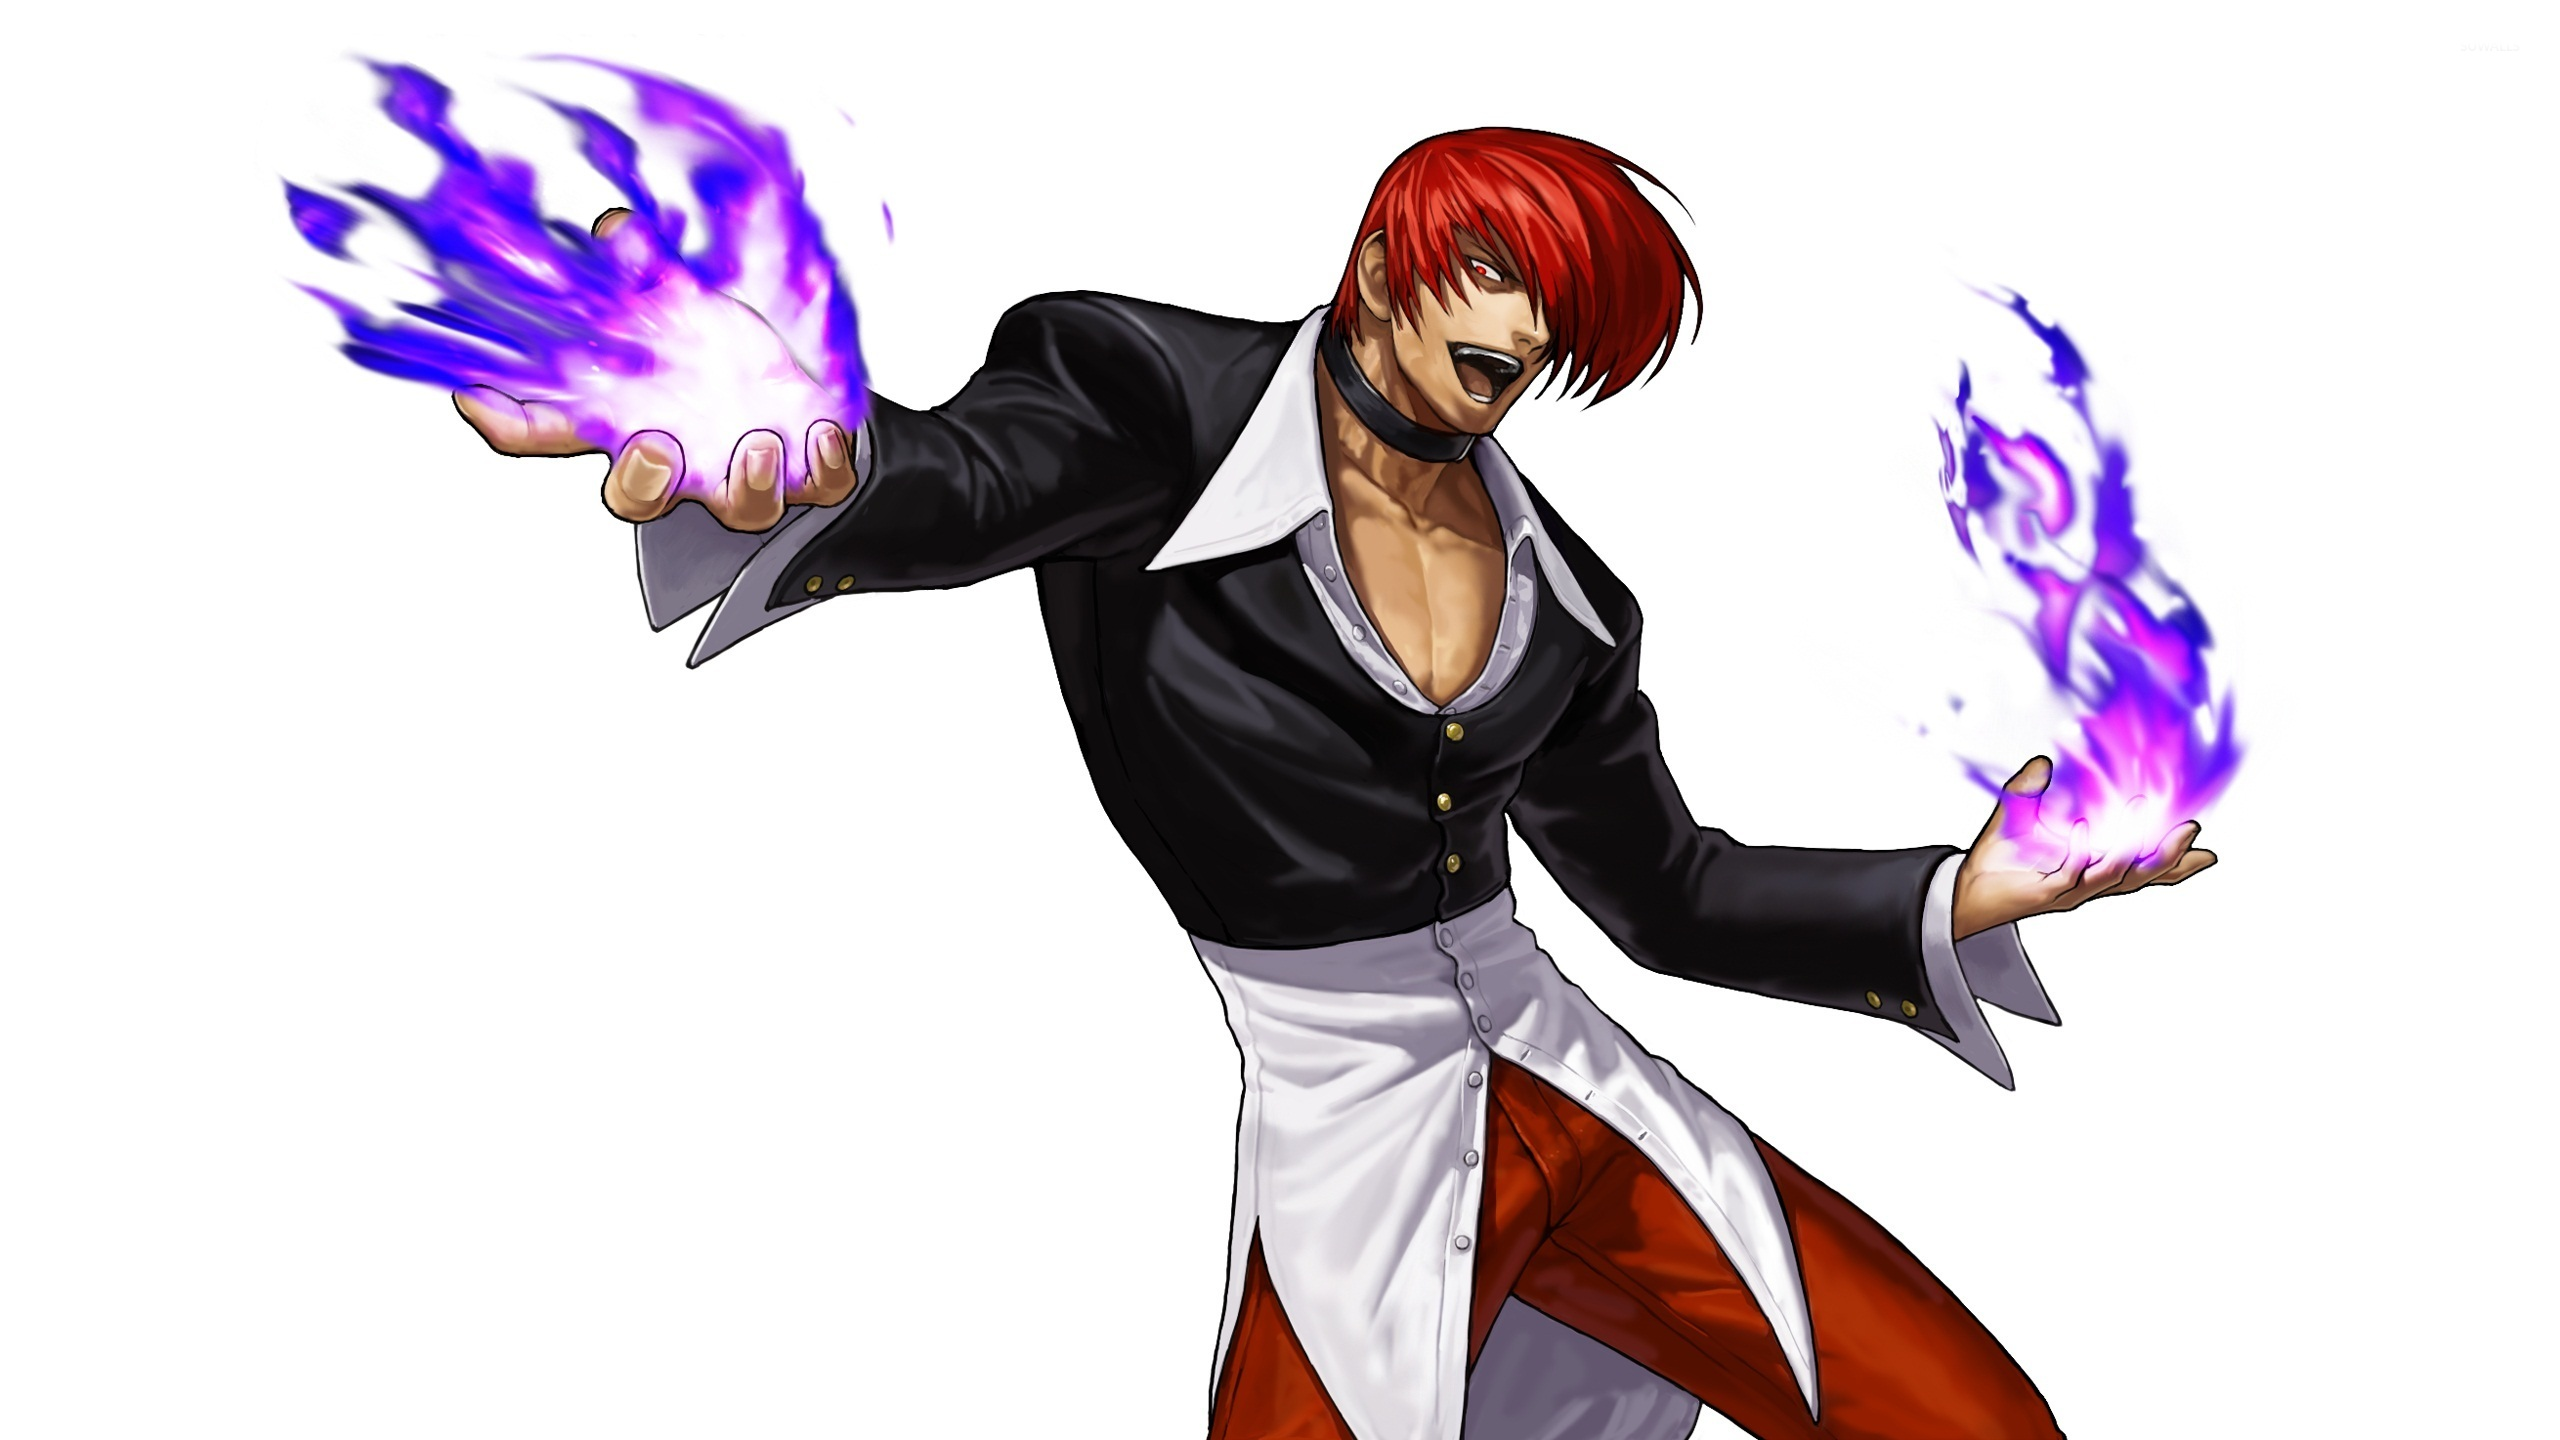 Iori Yagami The King Of Fighters 2 Wallpaper Game